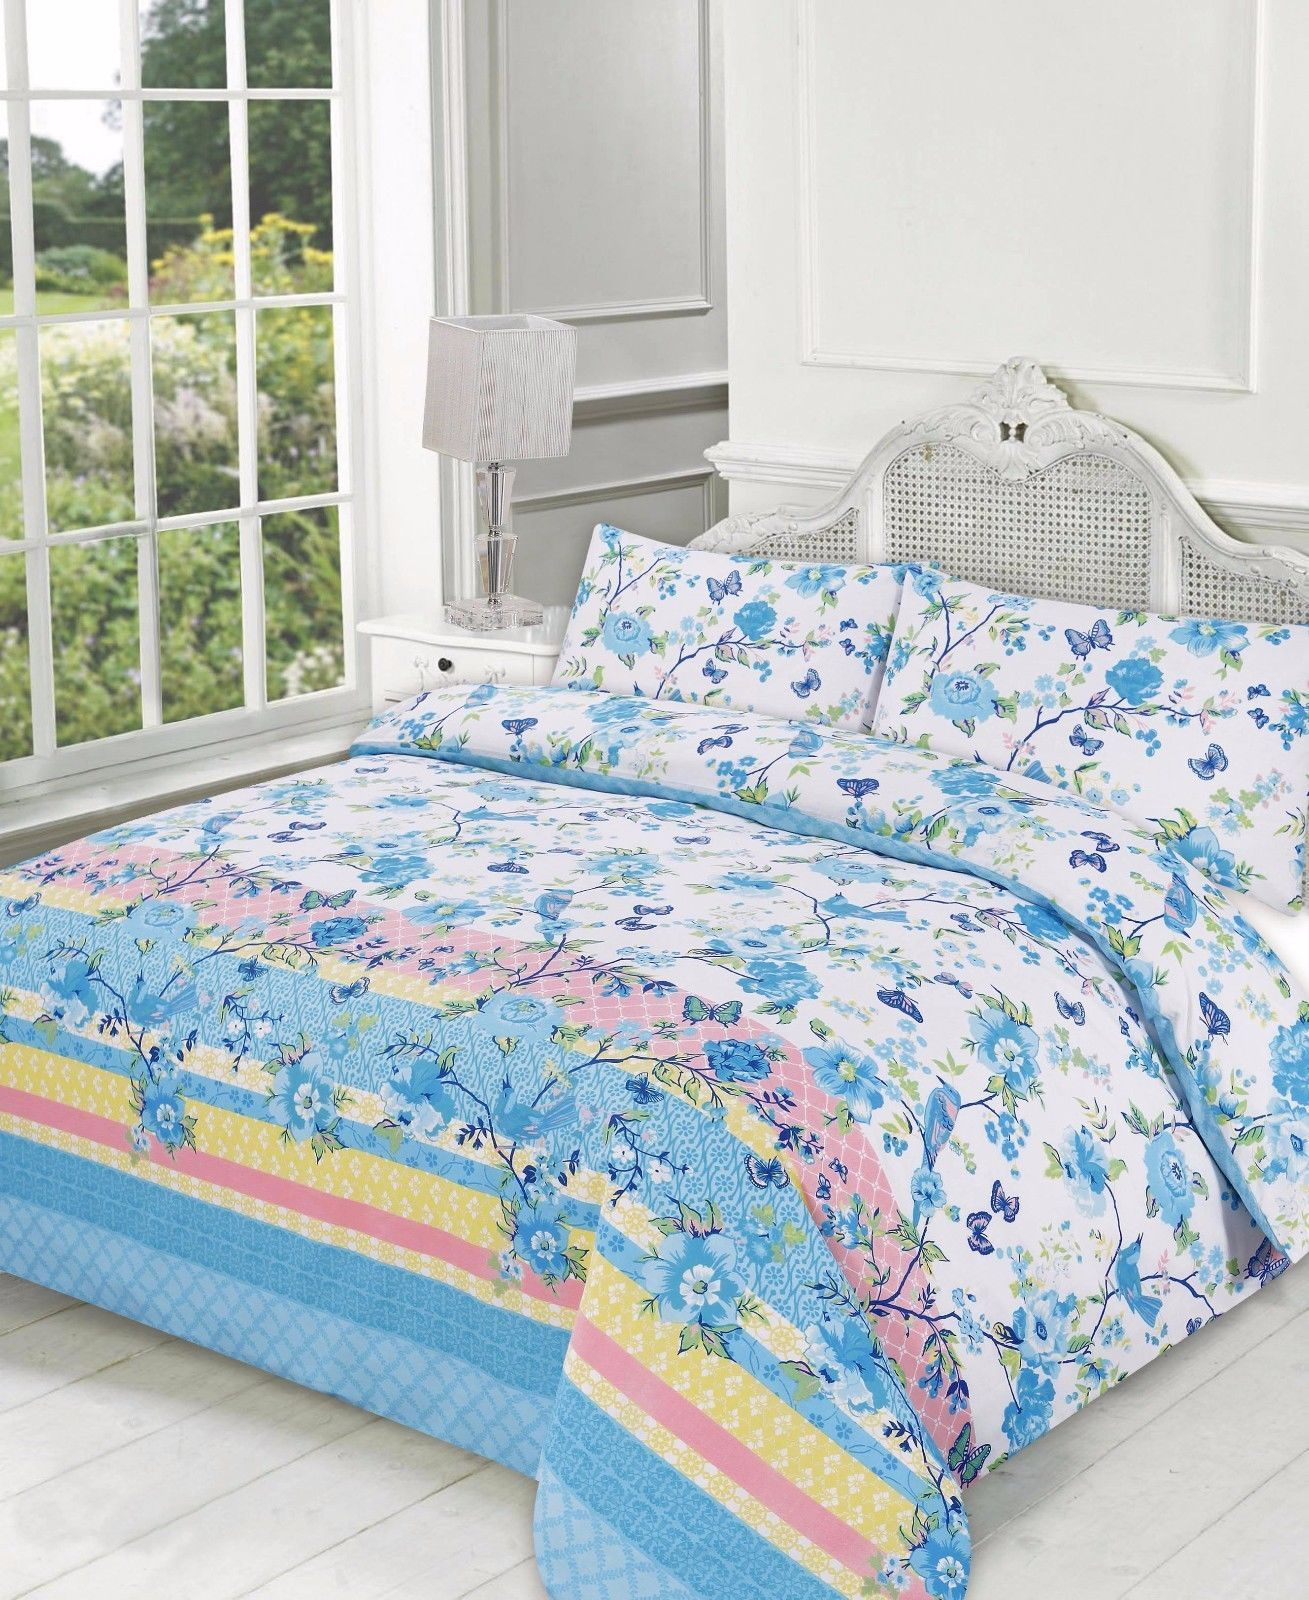 printed cover quilt lucy duvet linens teal product bedding range set